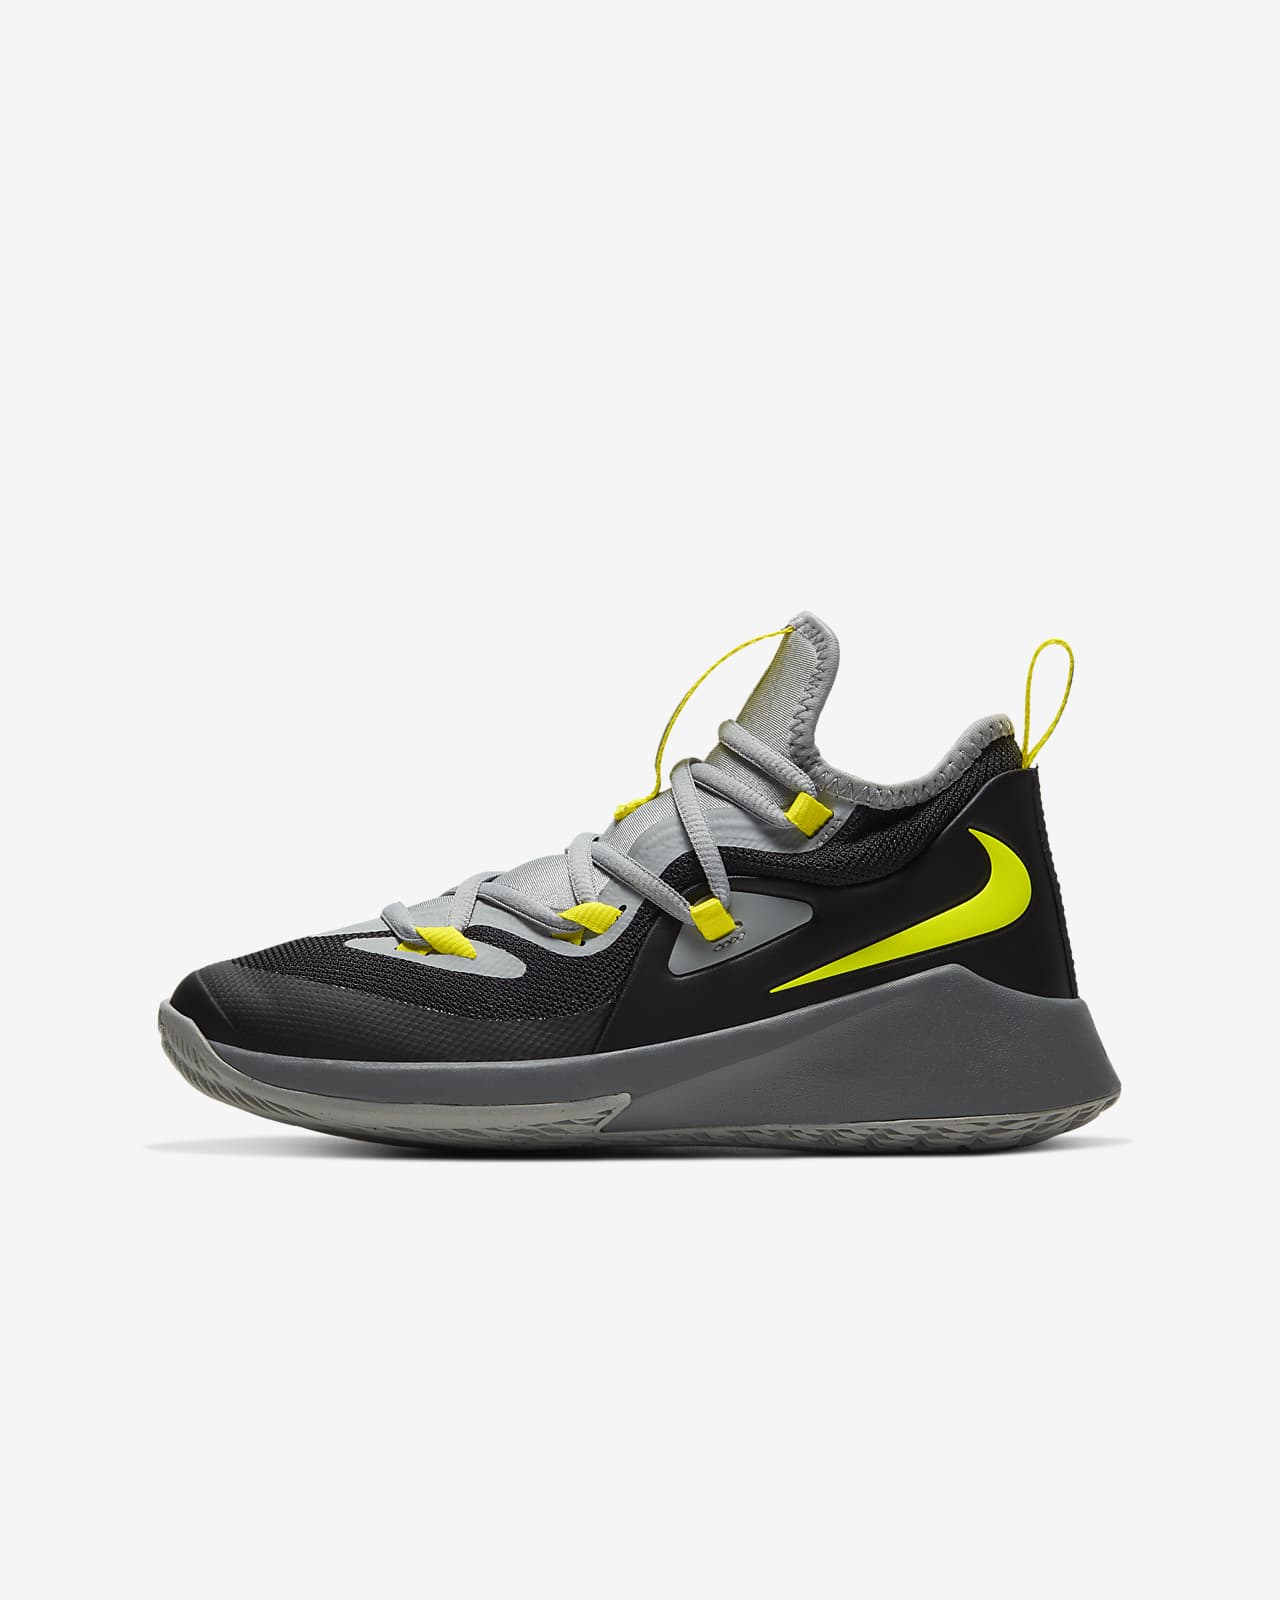 Big Kids' Basketball Shoe. Nike